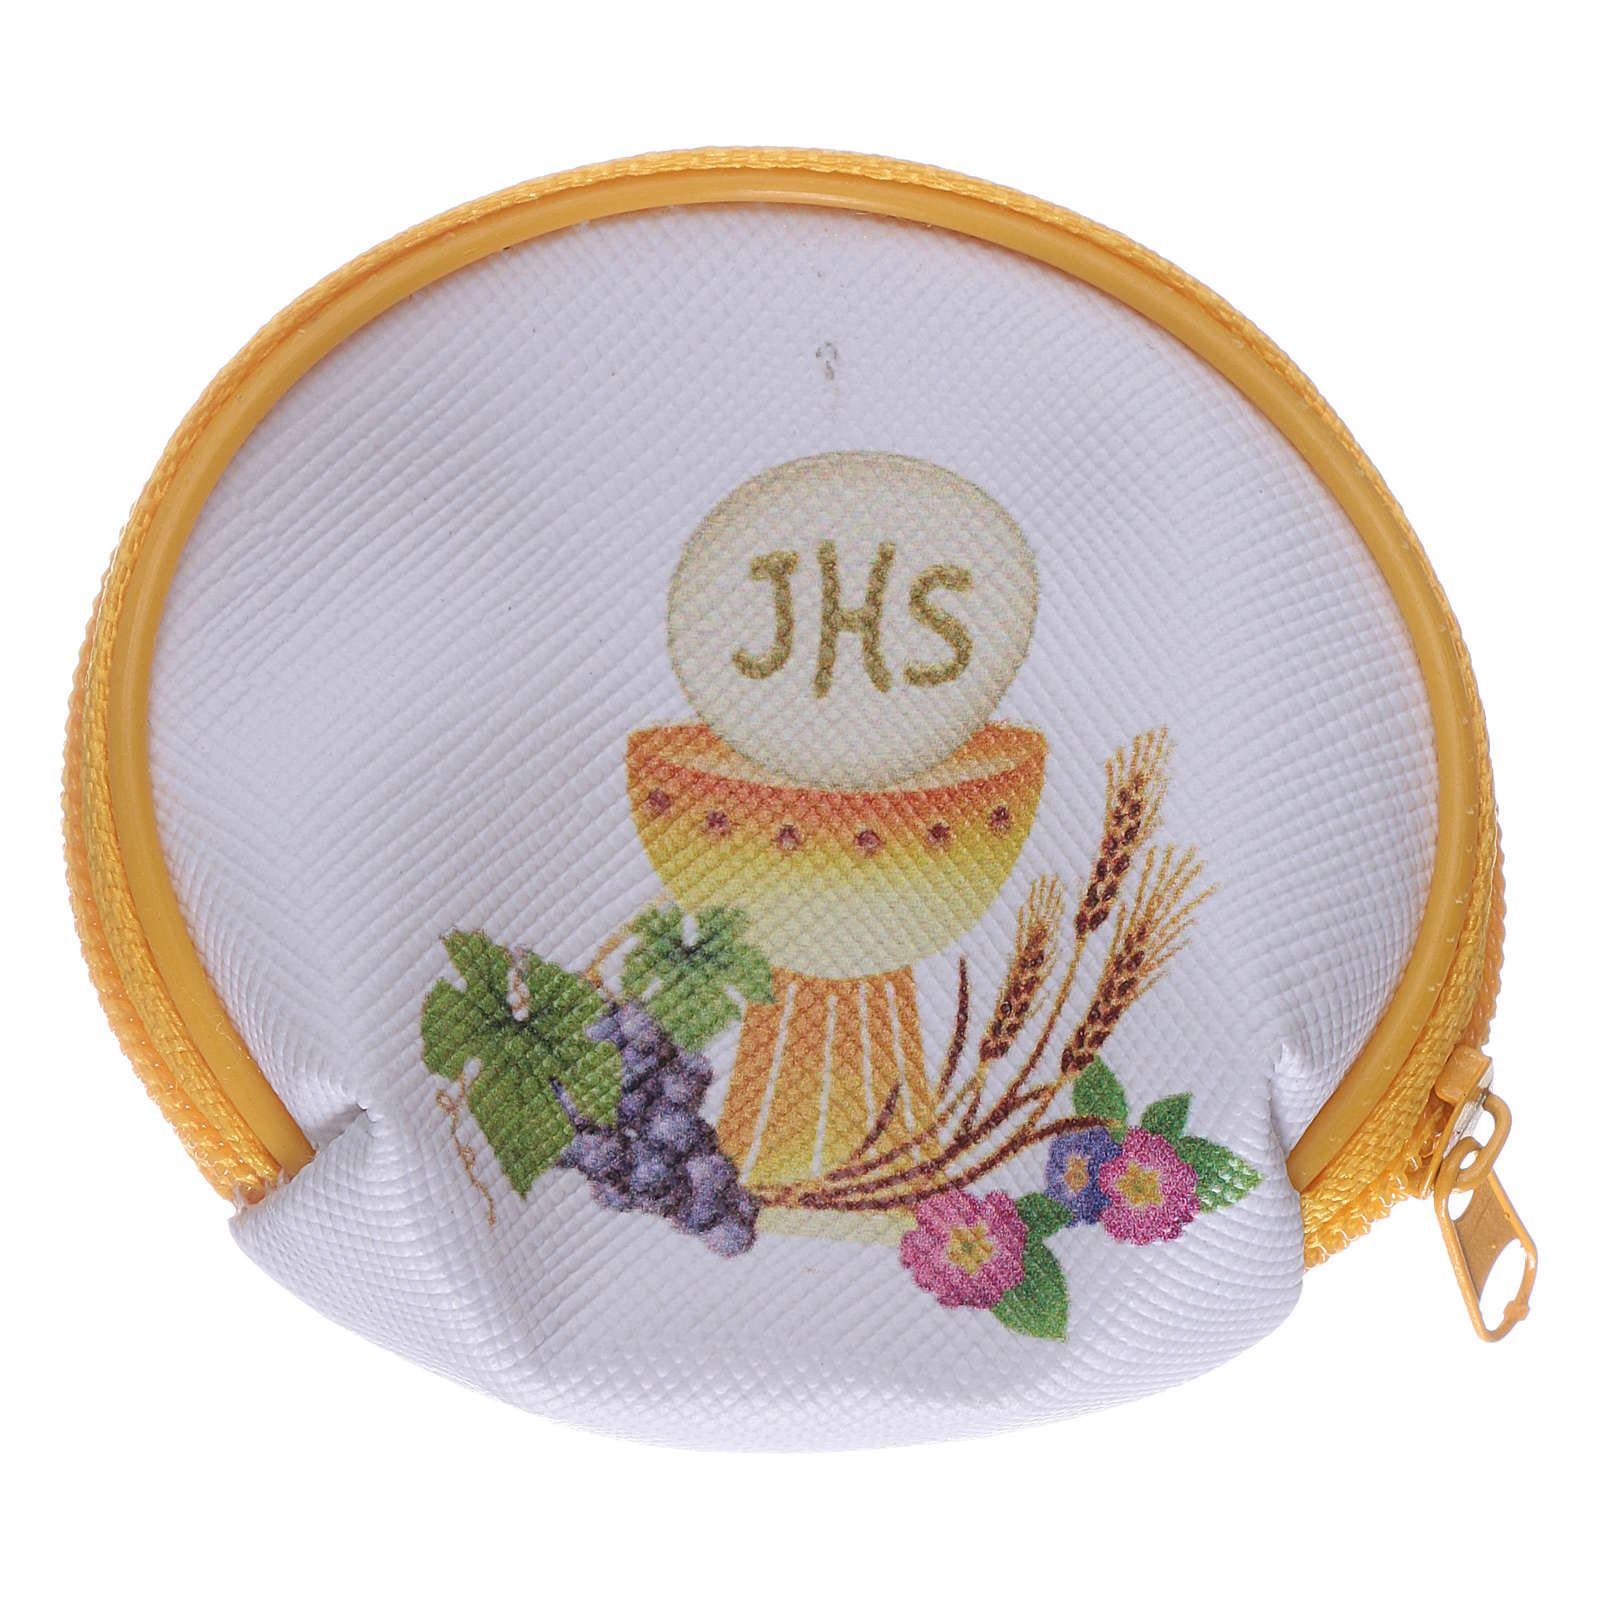 Purse rosary holder 7x6 cm with Chalice image 4